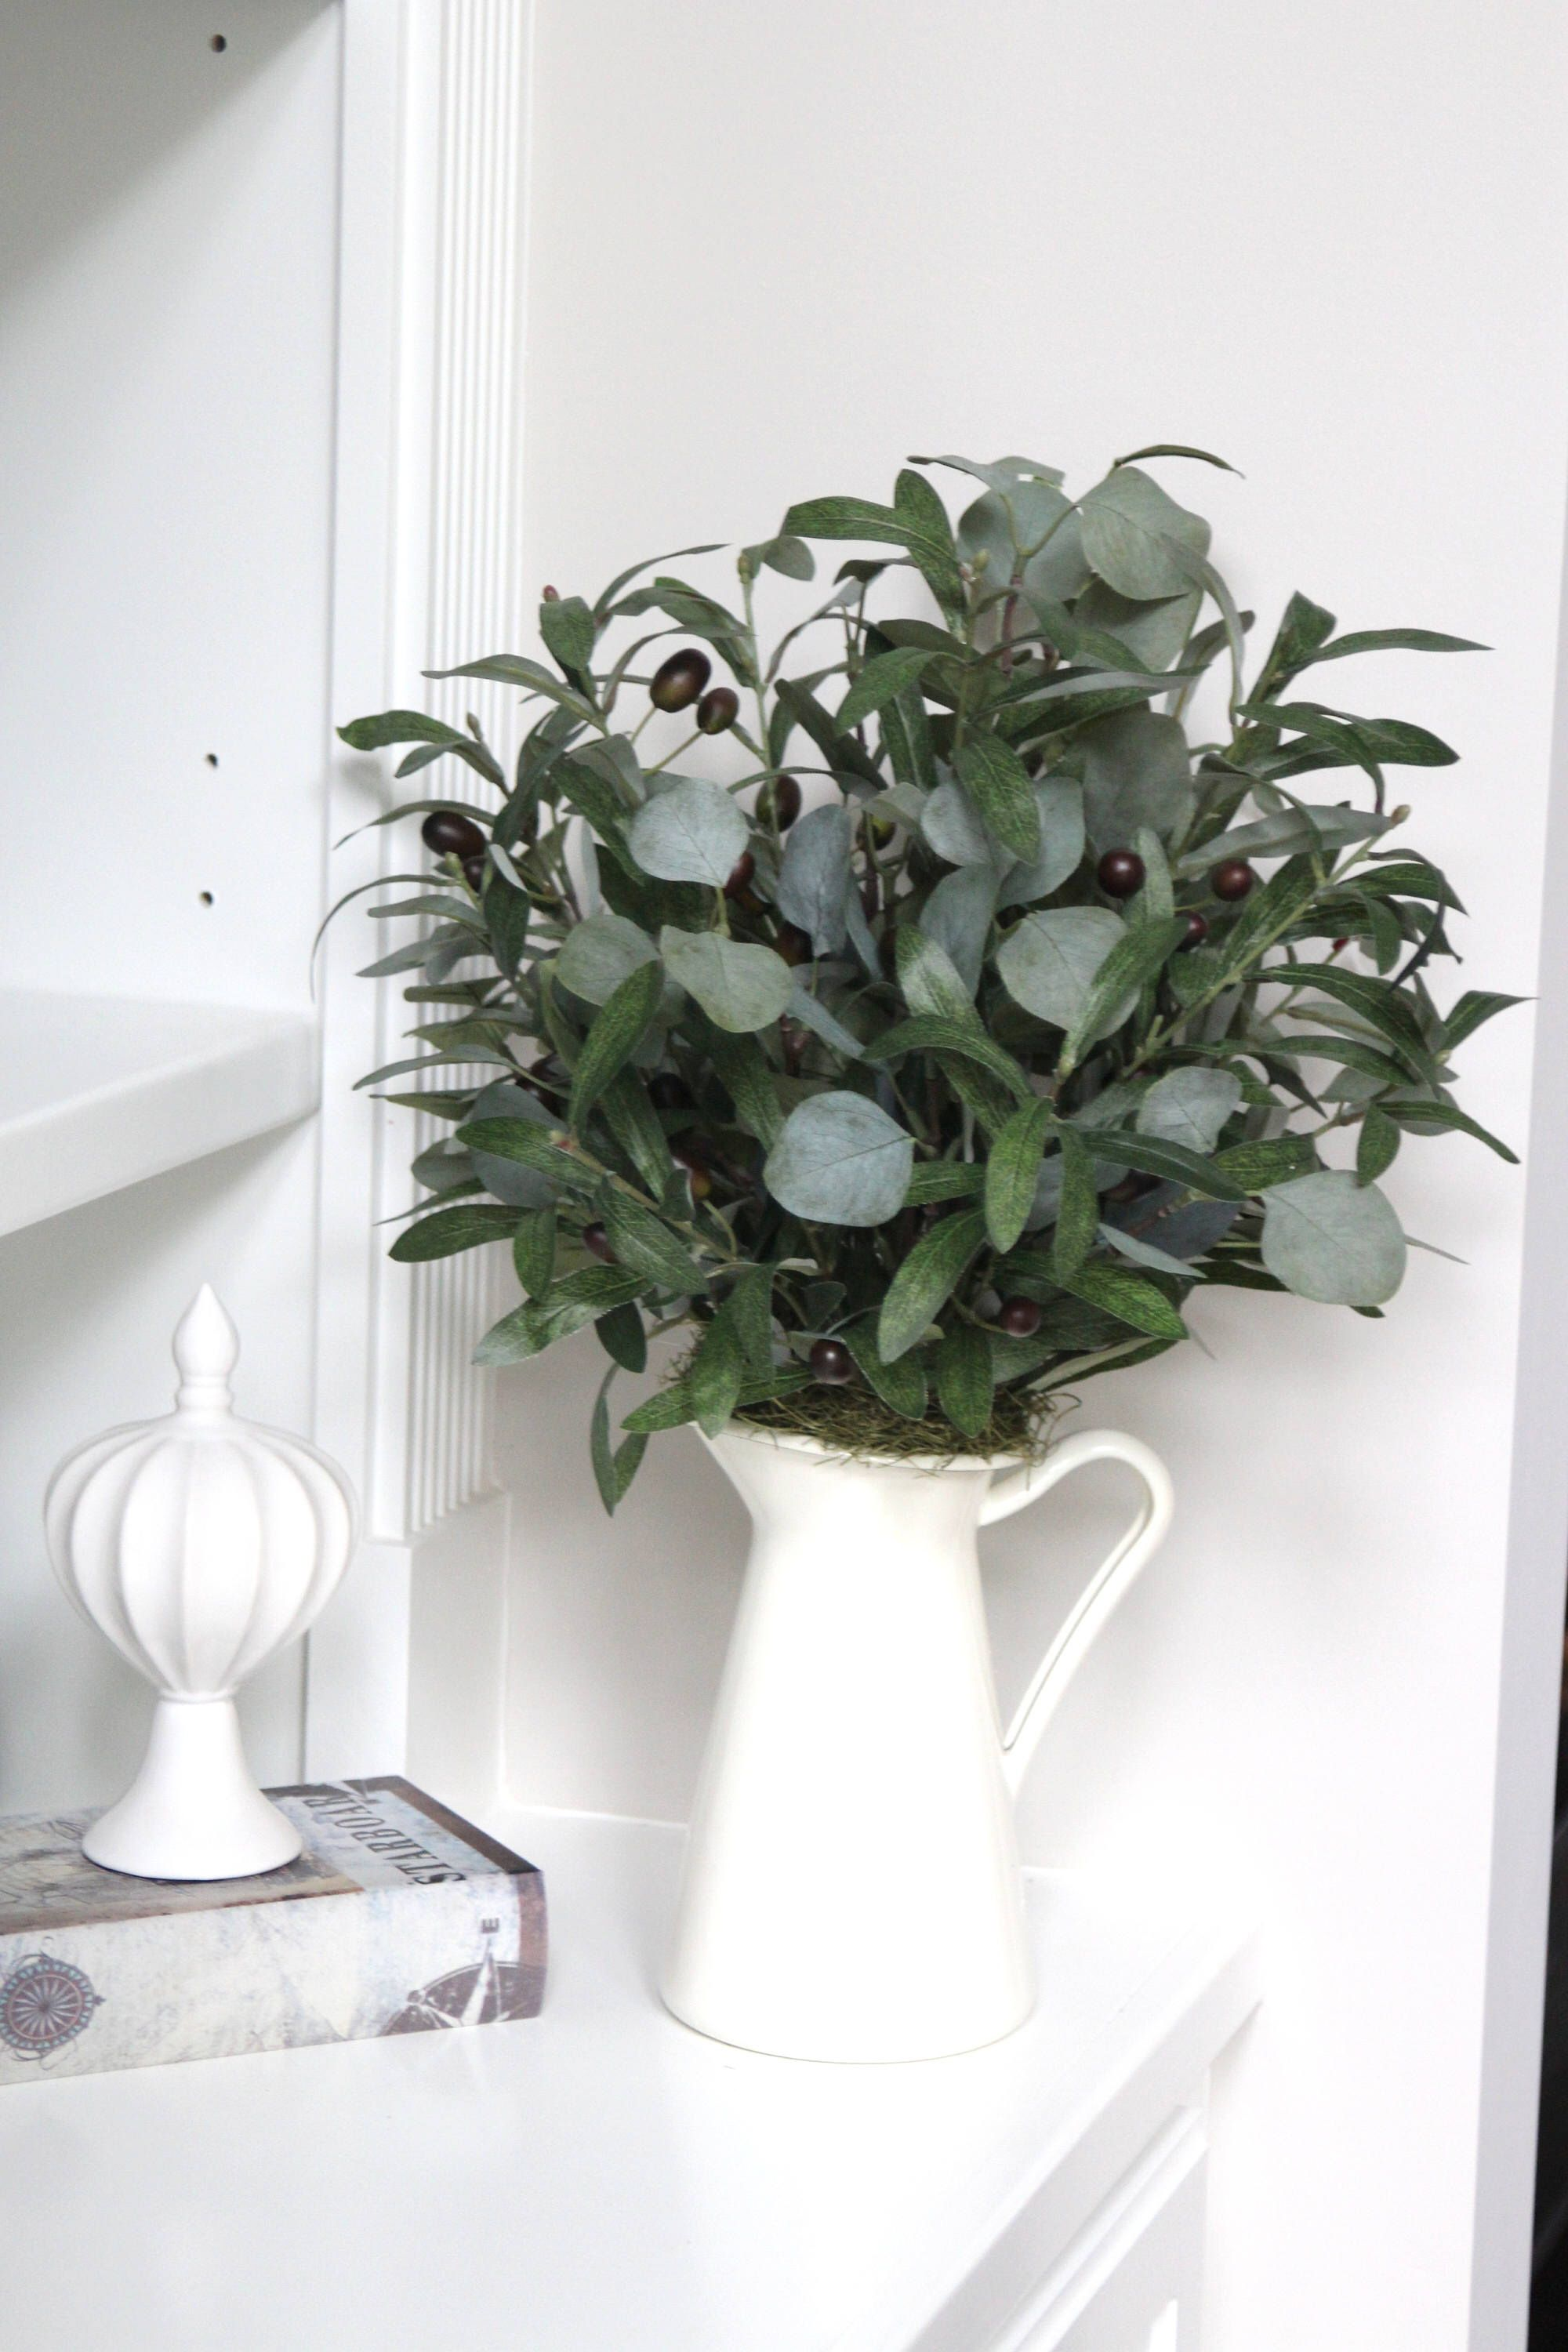 Farmhouse Decor Faux Greenery Arrangement Olive Branches and